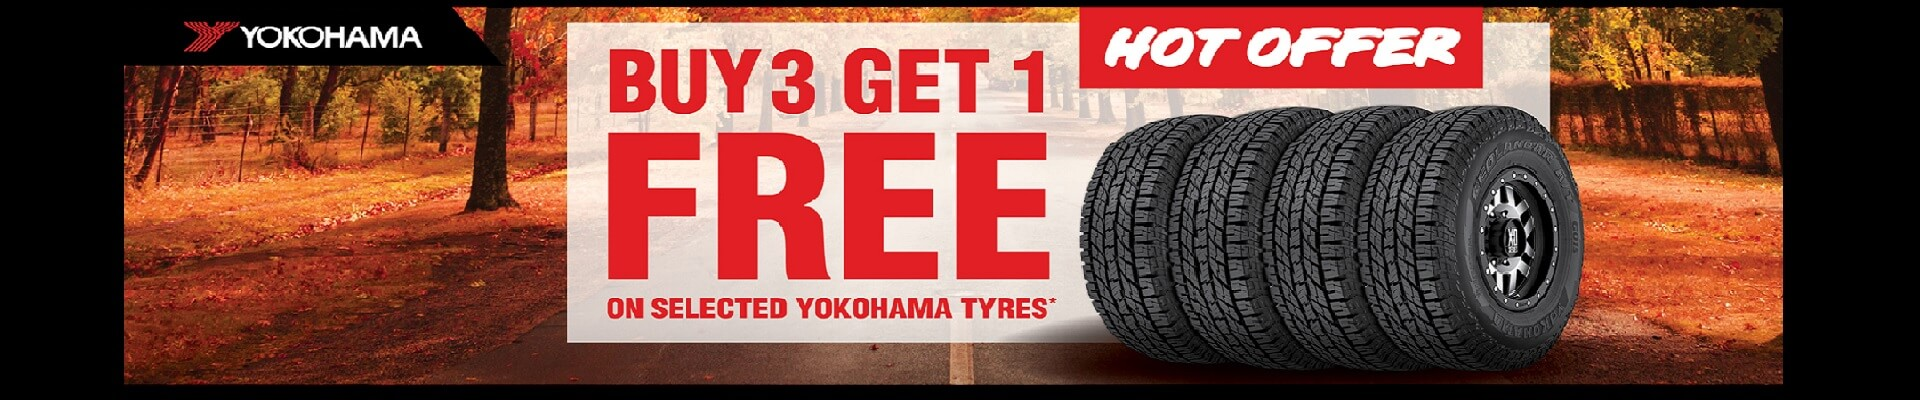 Buy 3 get 1 free on selected yokohama tyres